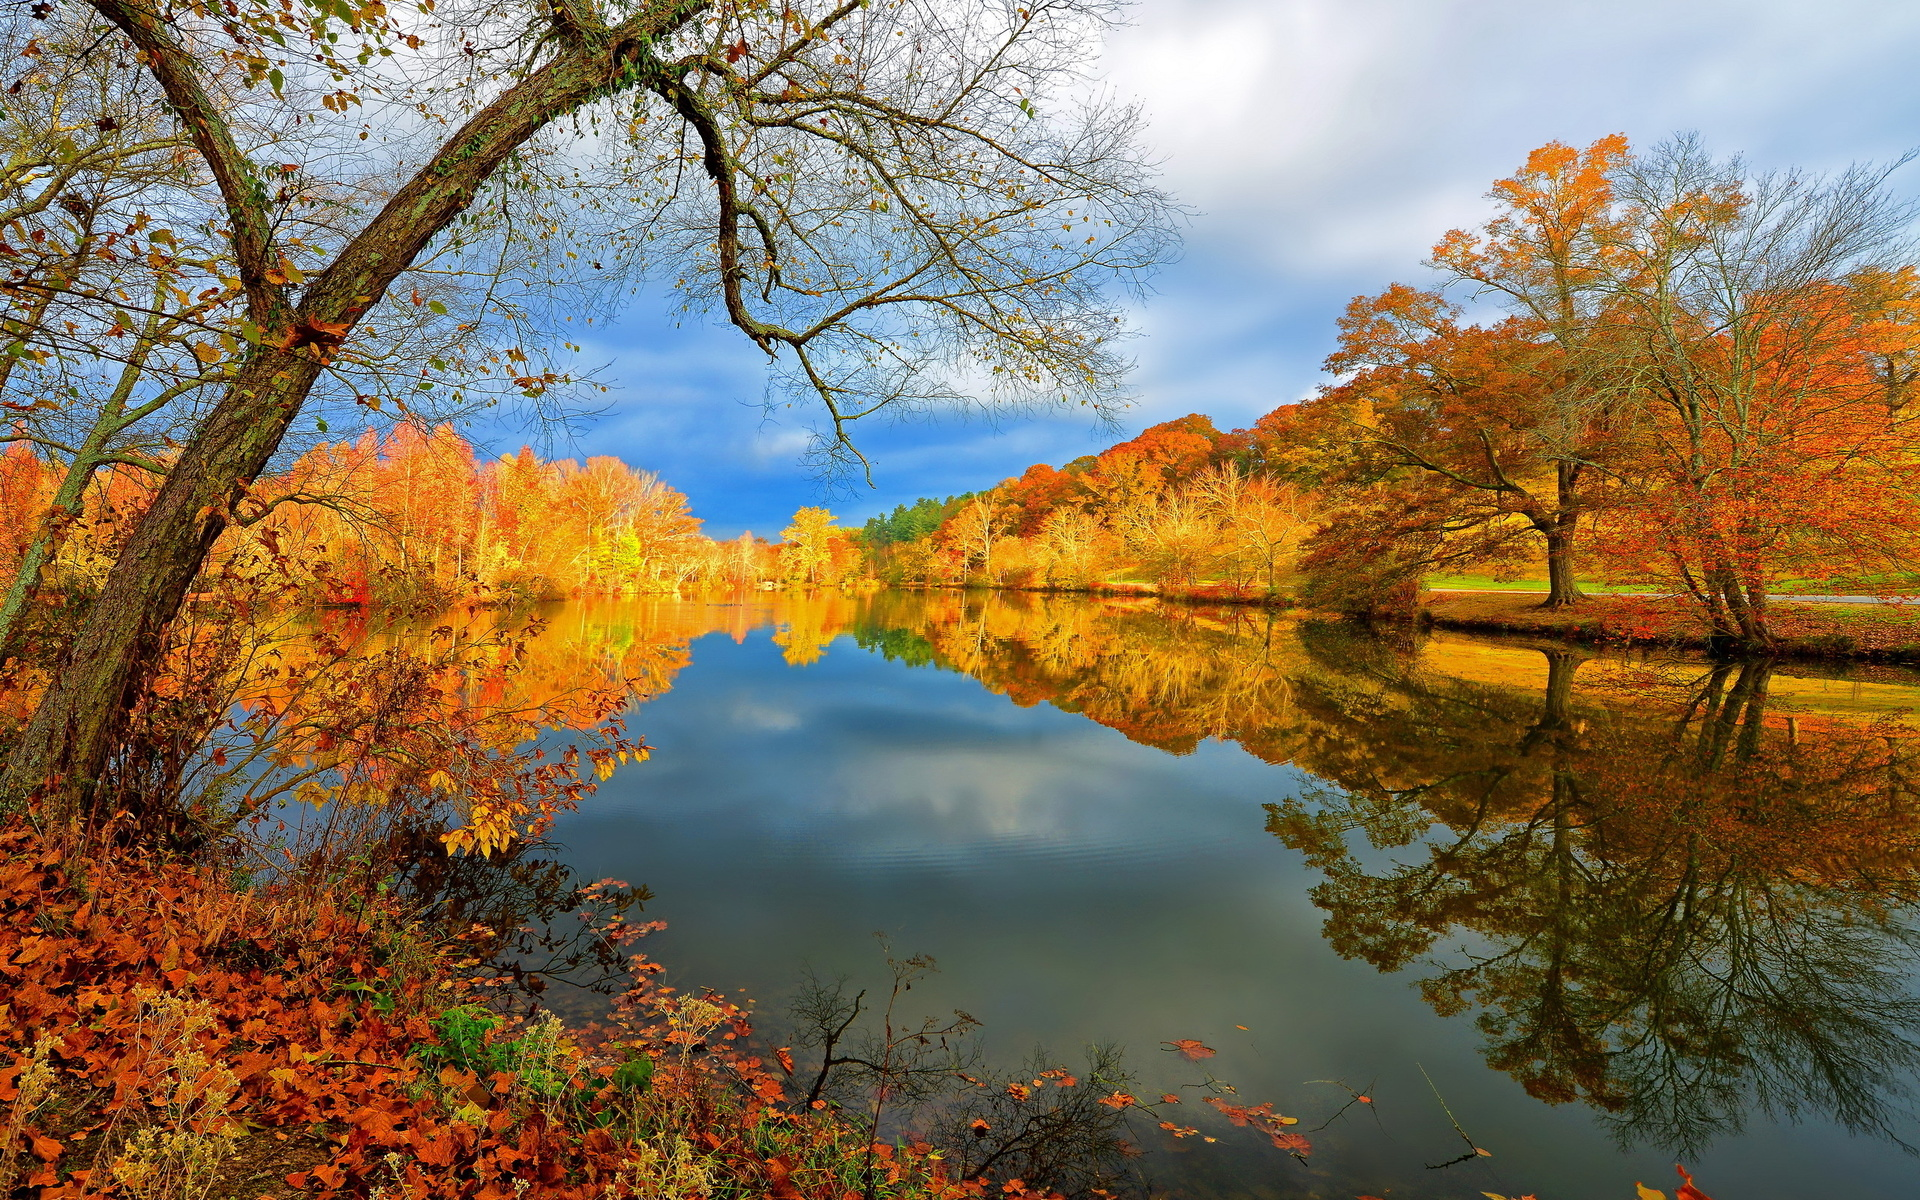 lake 1 landscape 1 landscapes 1 nature 1 pond 1 reflection 1 scenery 1